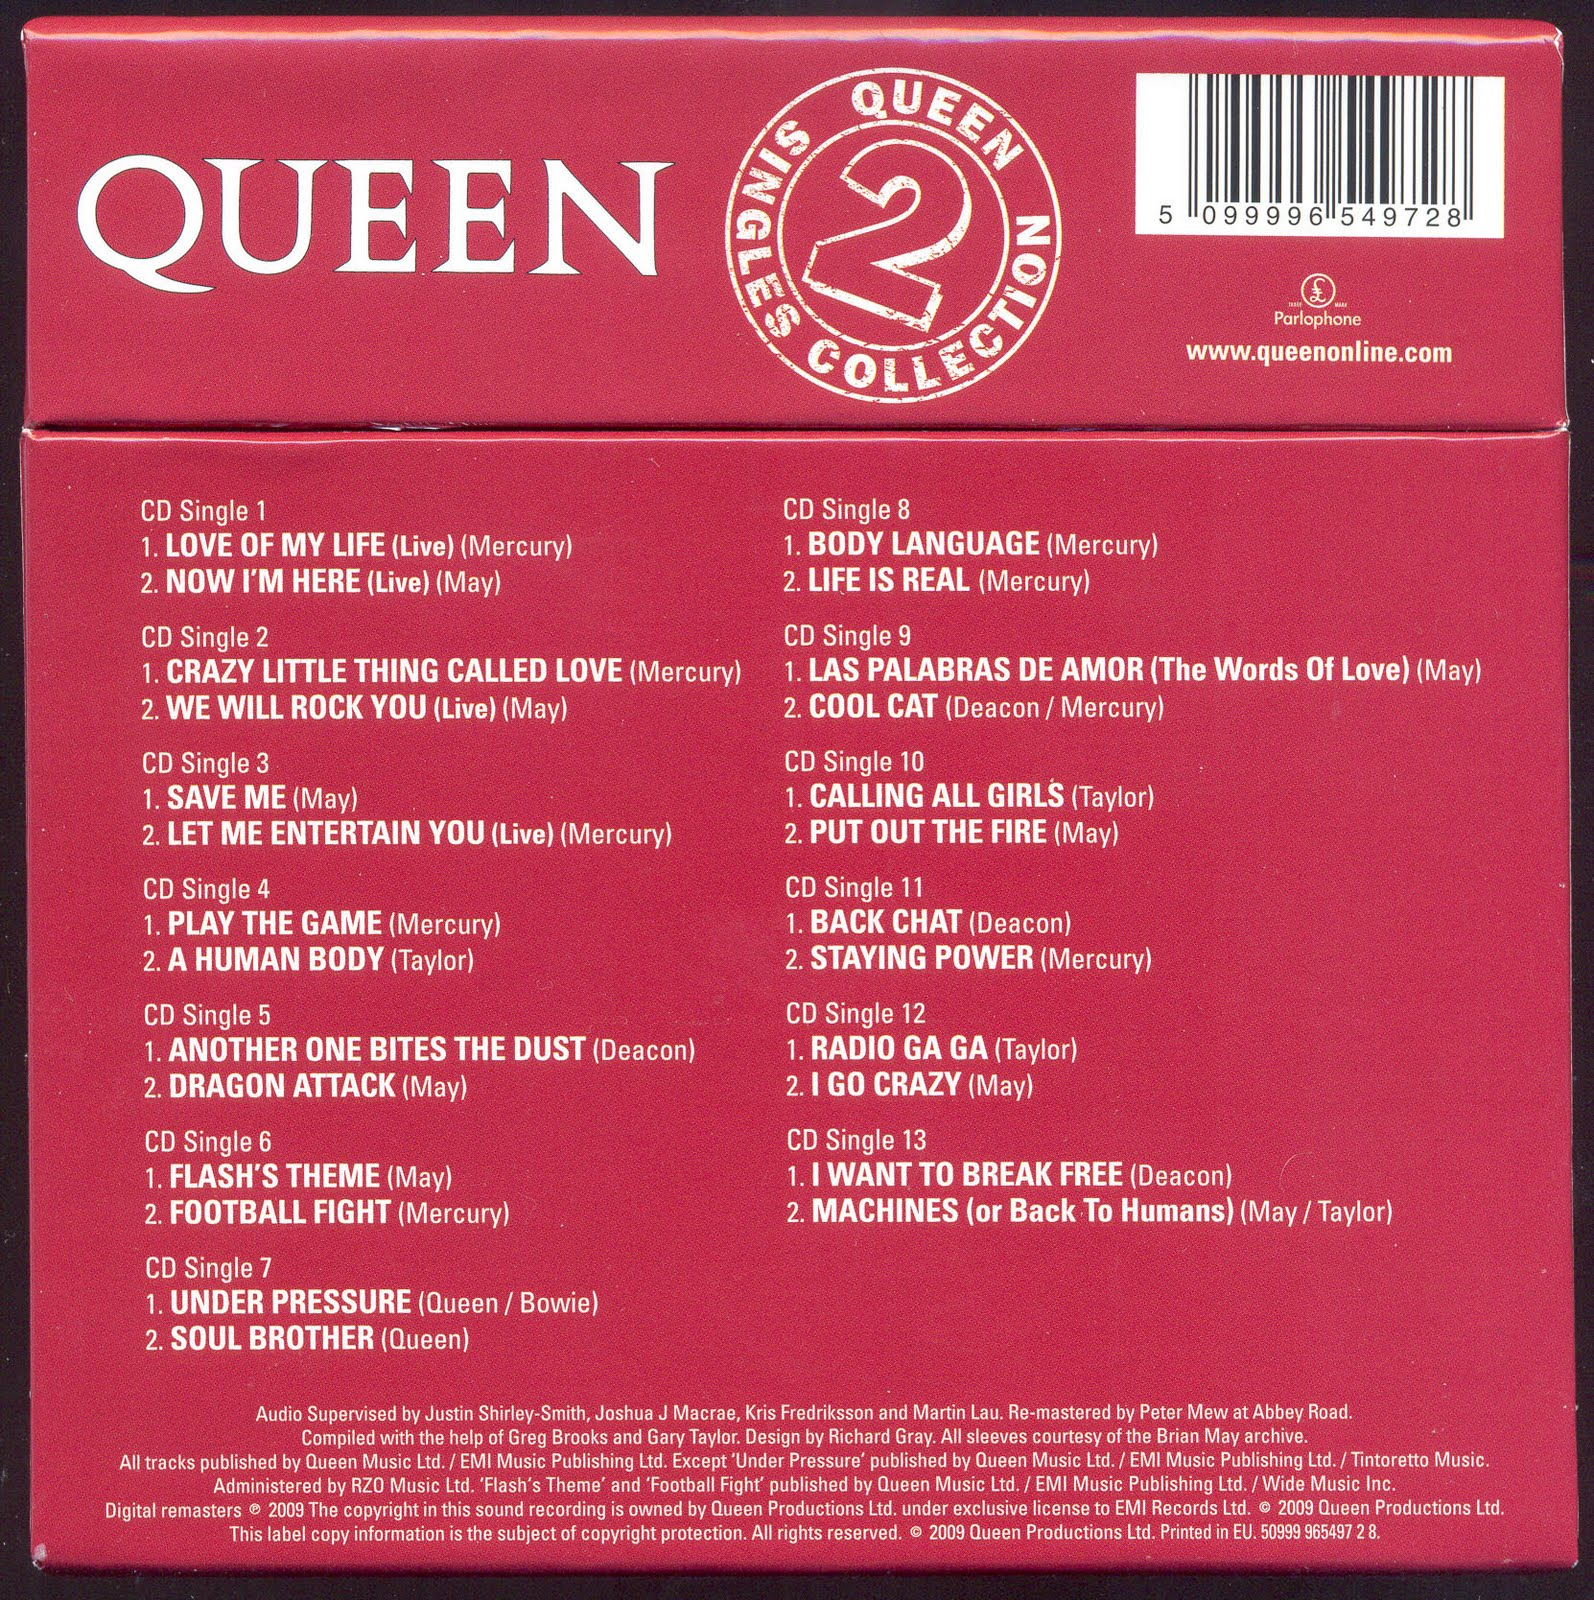 de queen black personals The ultimate queen site, featuring album details, videos and dvd's, song lyrics and versions, demos, unreleased songs, discographies, galleries and concerts.